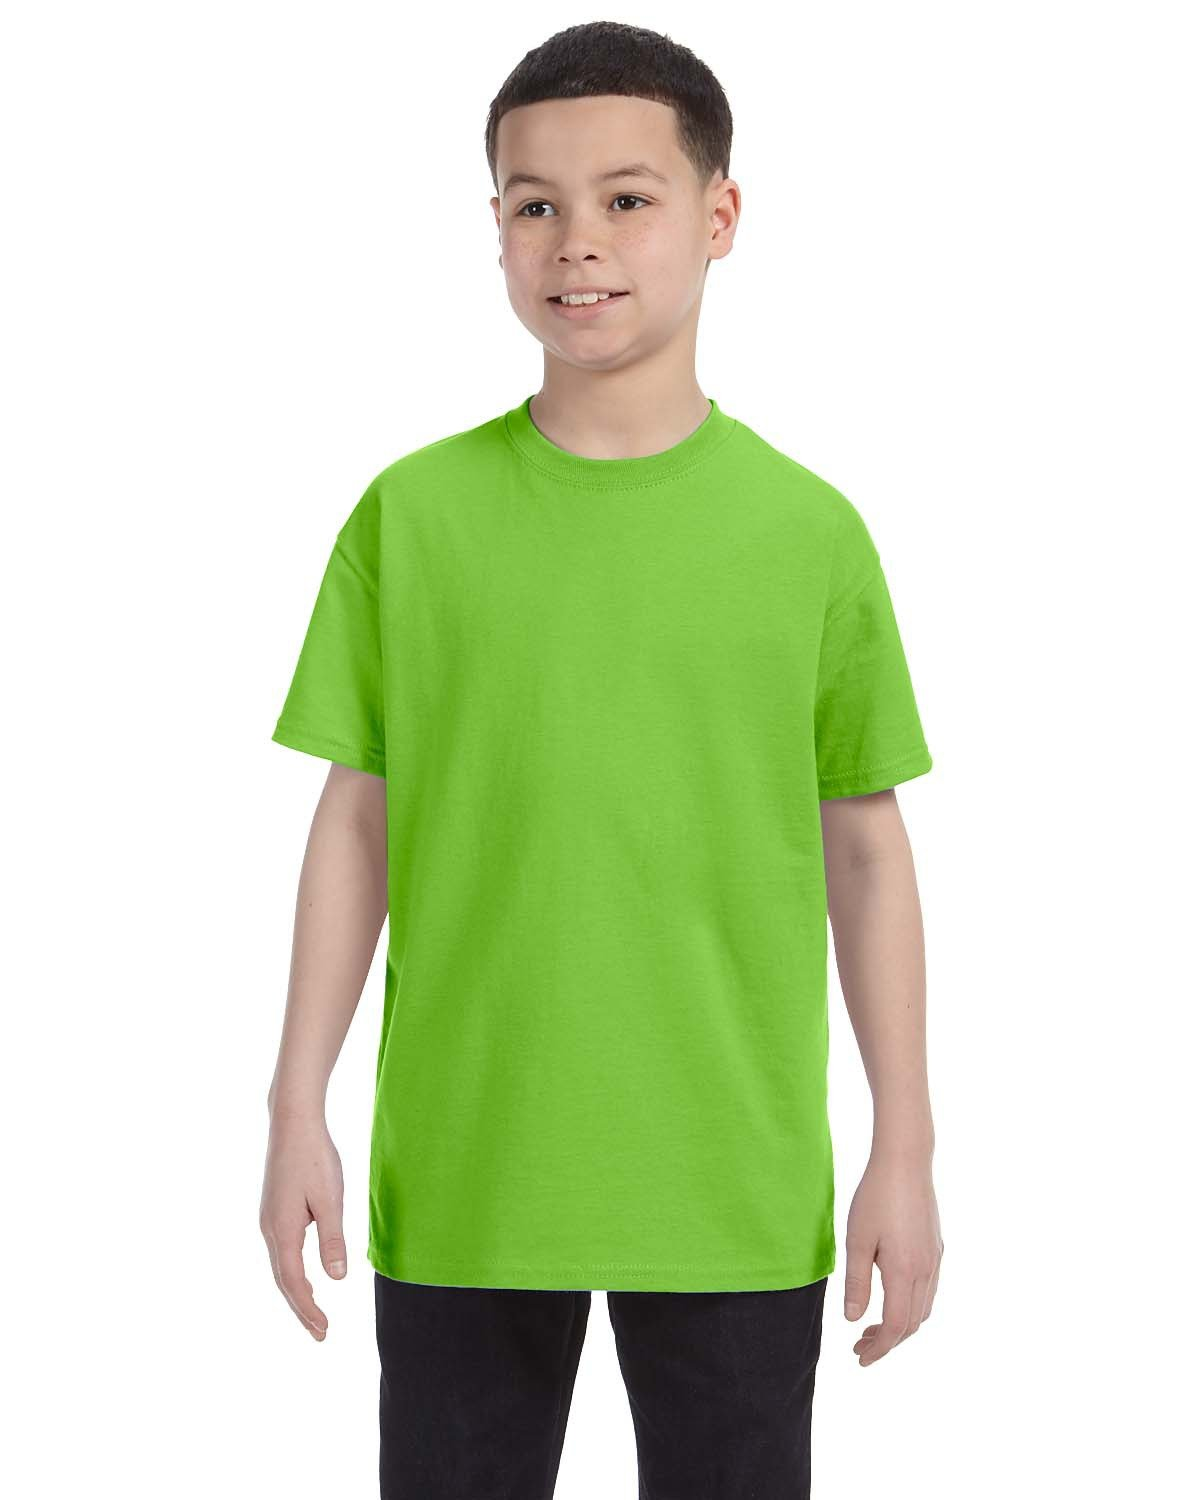 Hanes Youth Authentic-T T-Shirt LIME